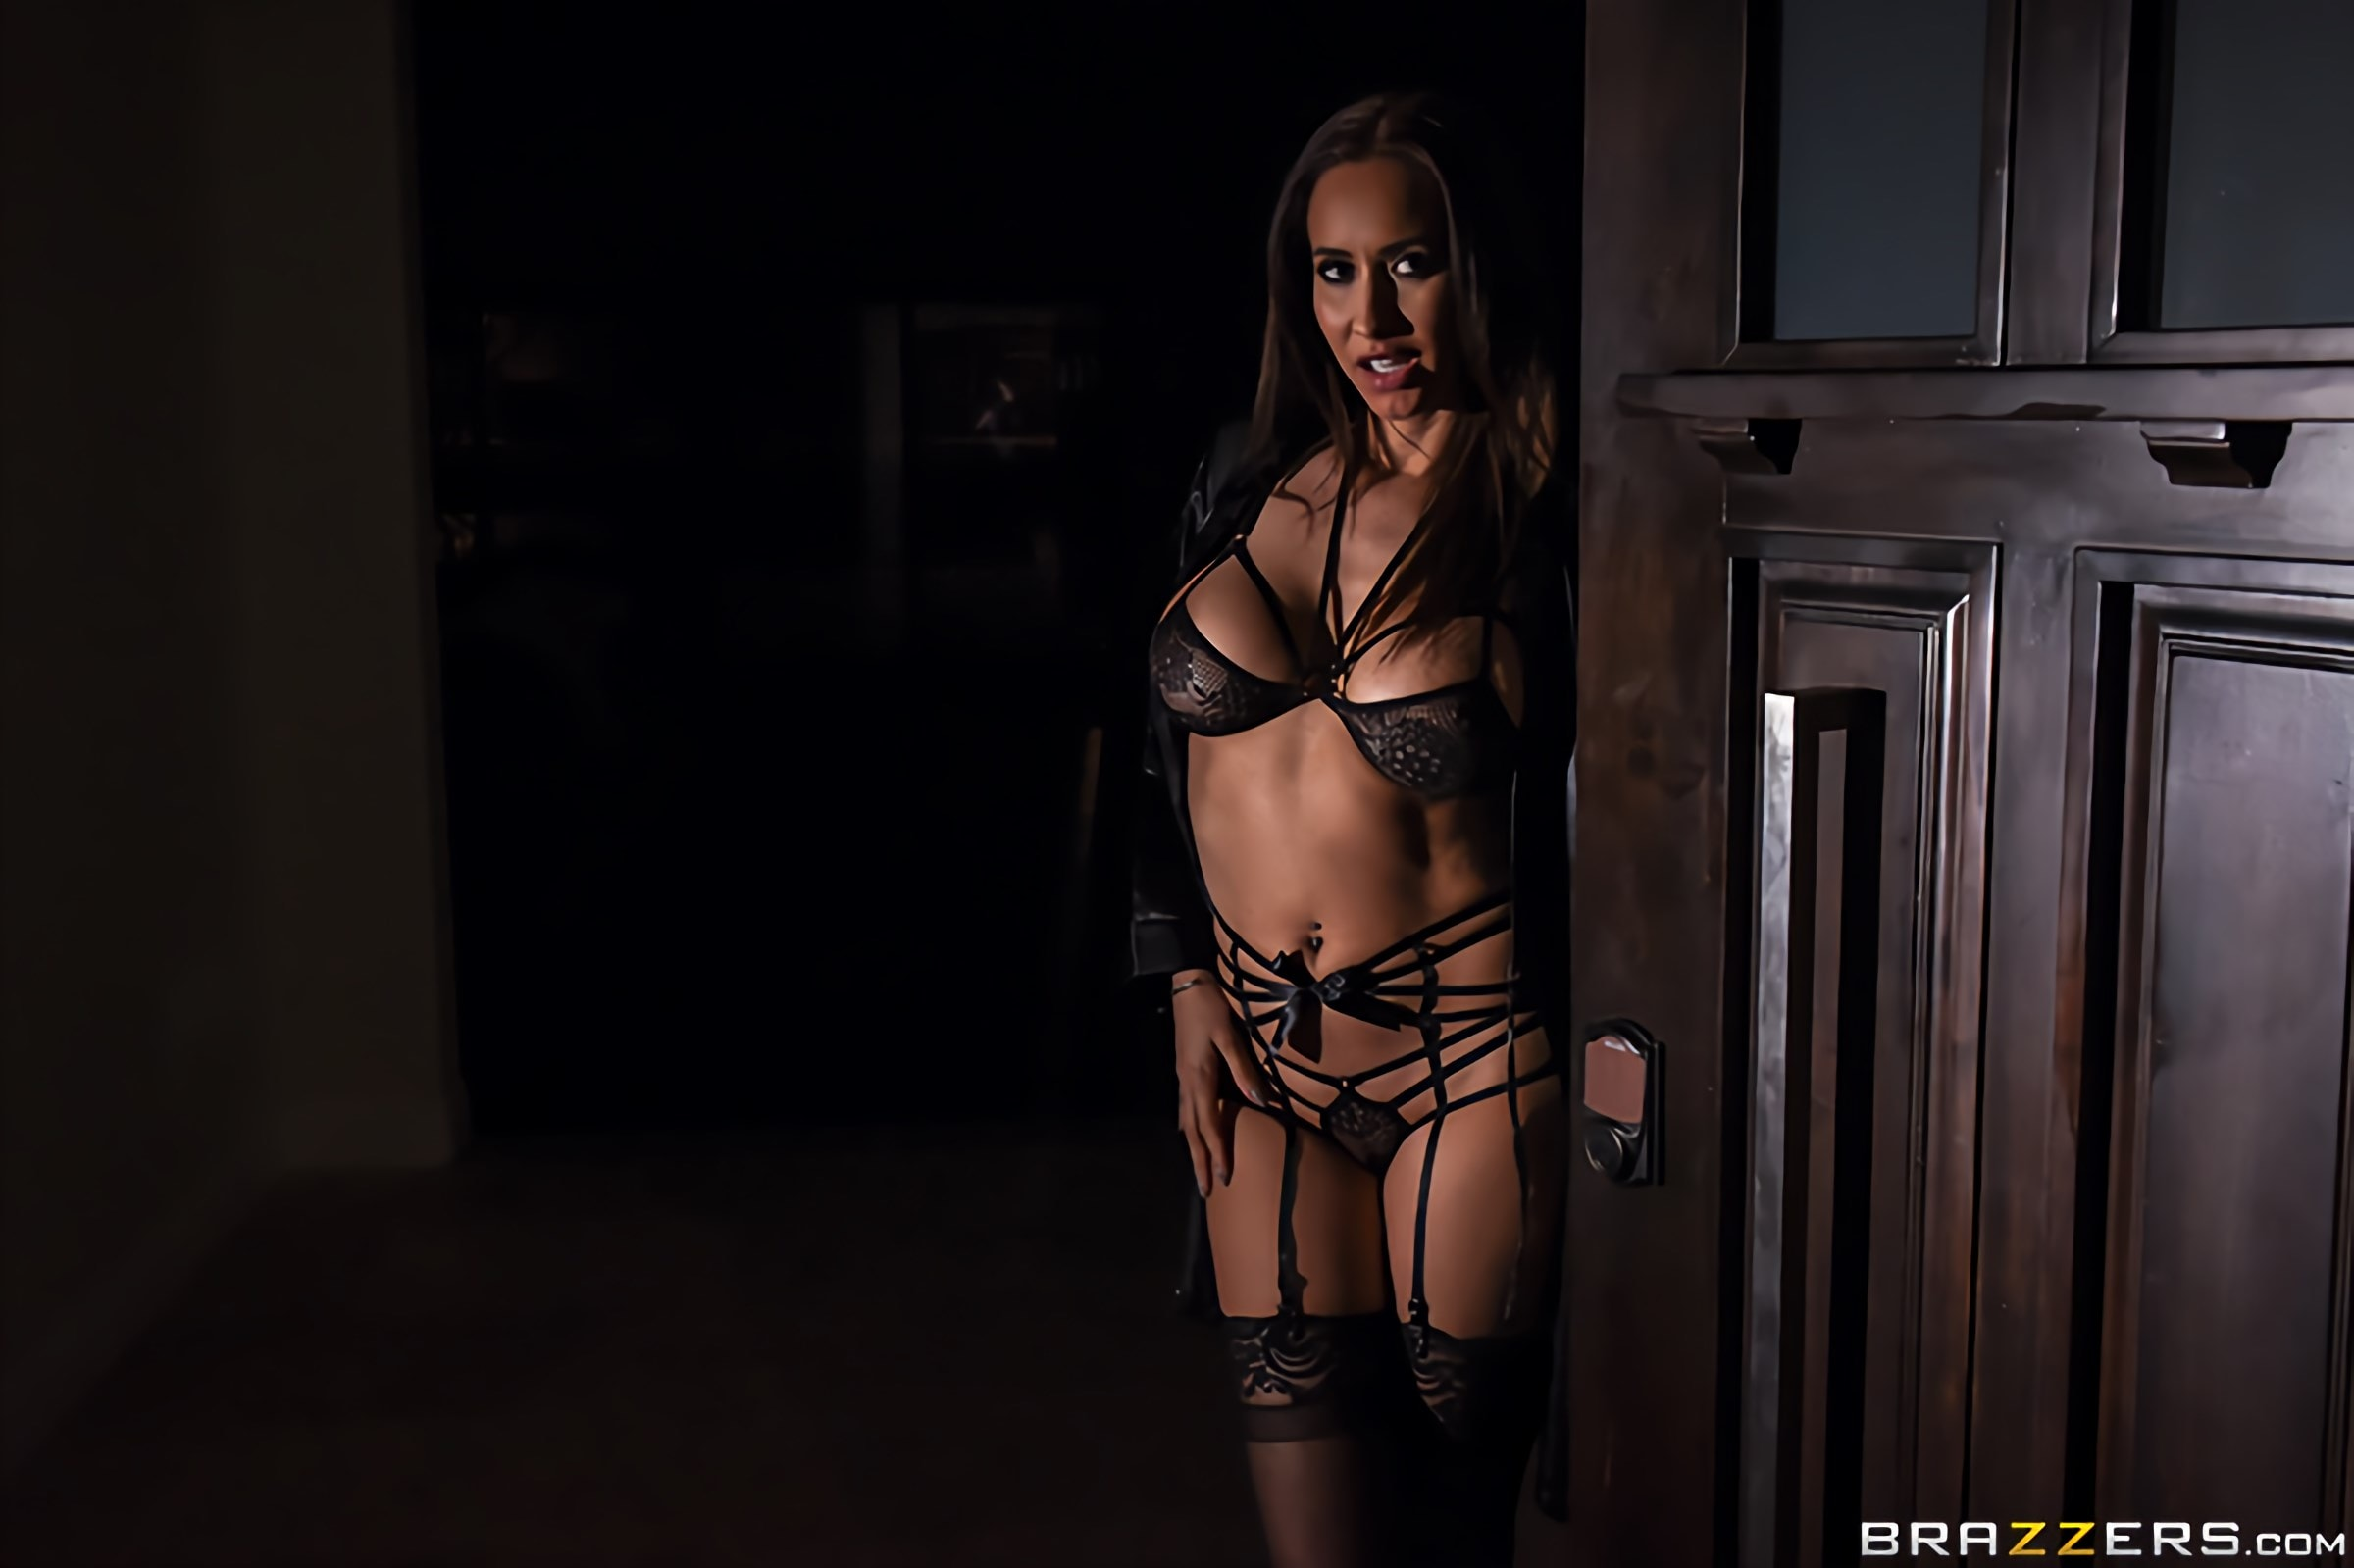 Brazzers 'Her Husband's Whipped' starring Isis Love (photo 1)